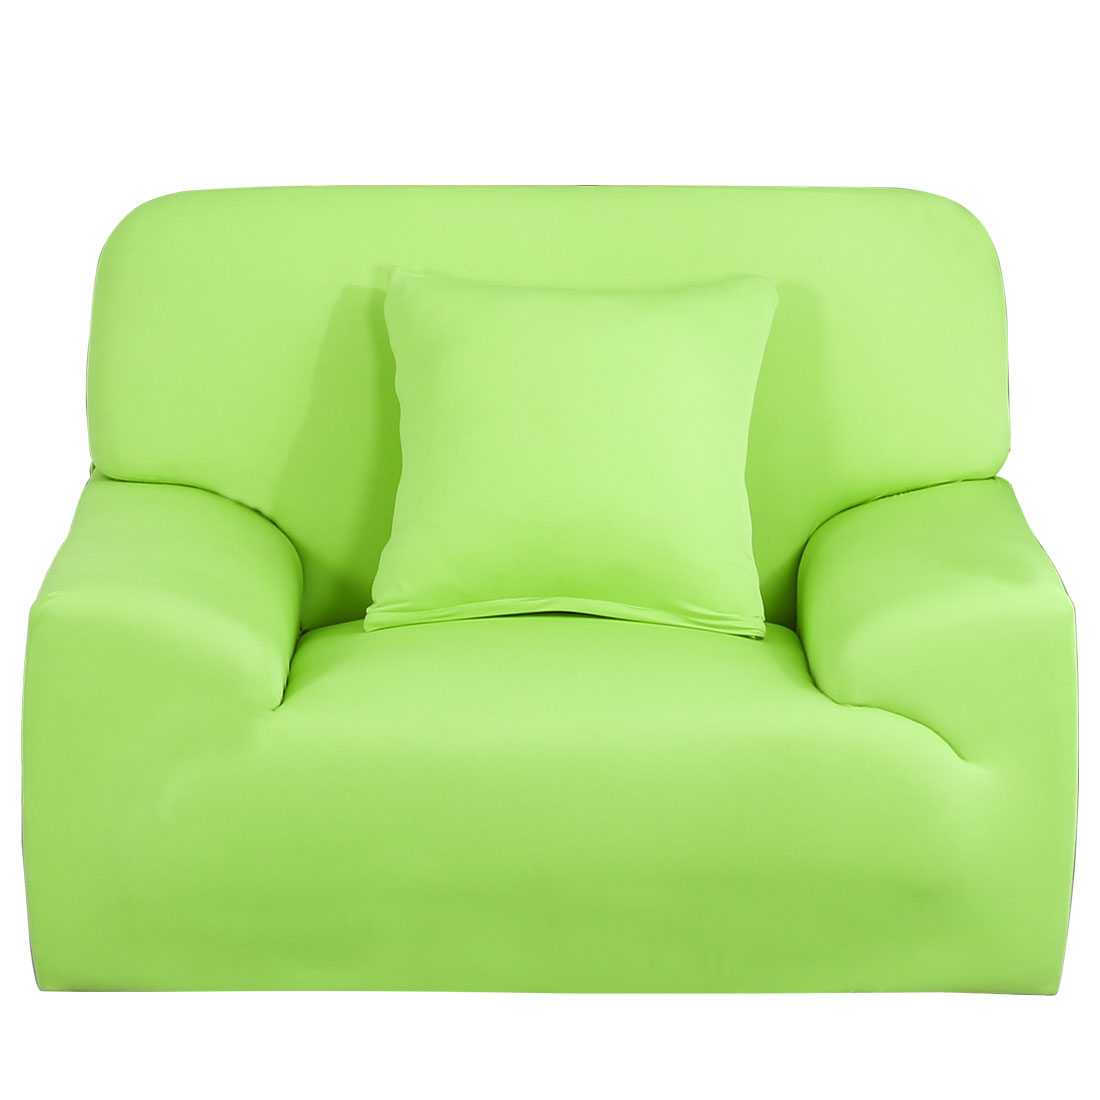 Household Sofa Chair Elastic Strap Stretch Cover Slipcover Green 35''-55''